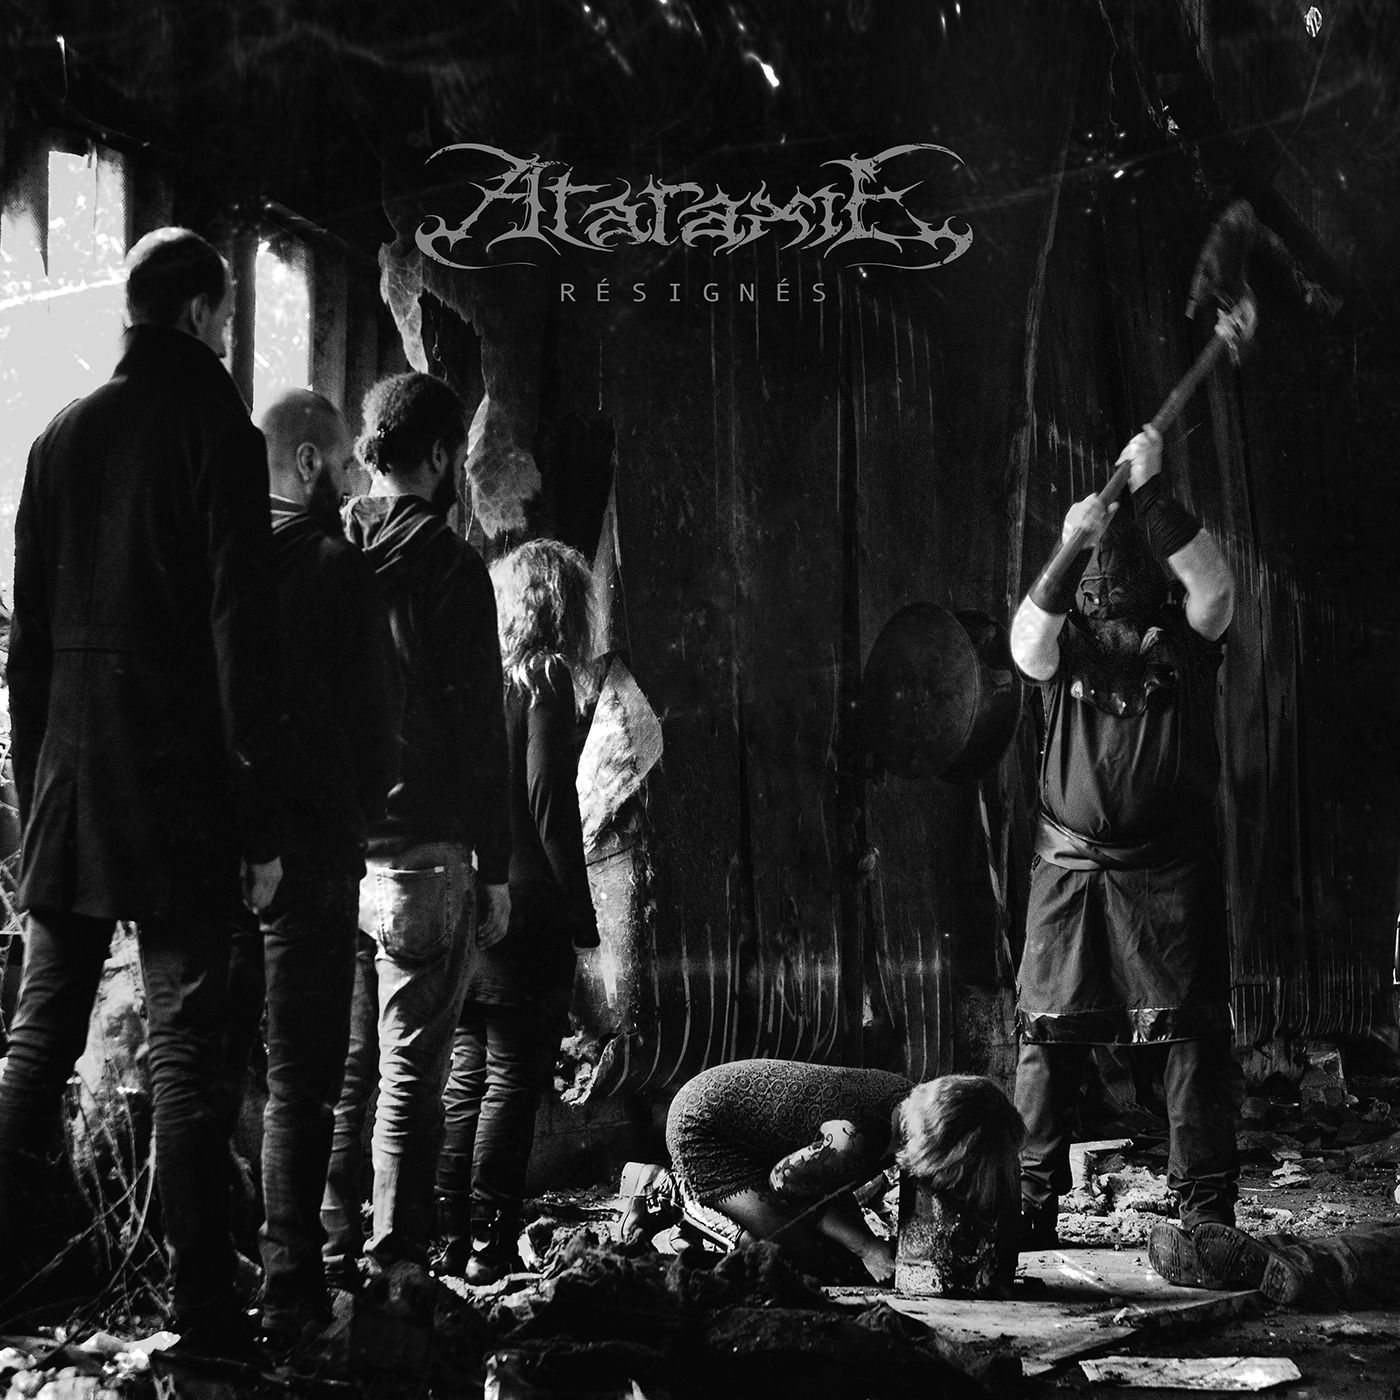 Review for Ataraxie - Résignés